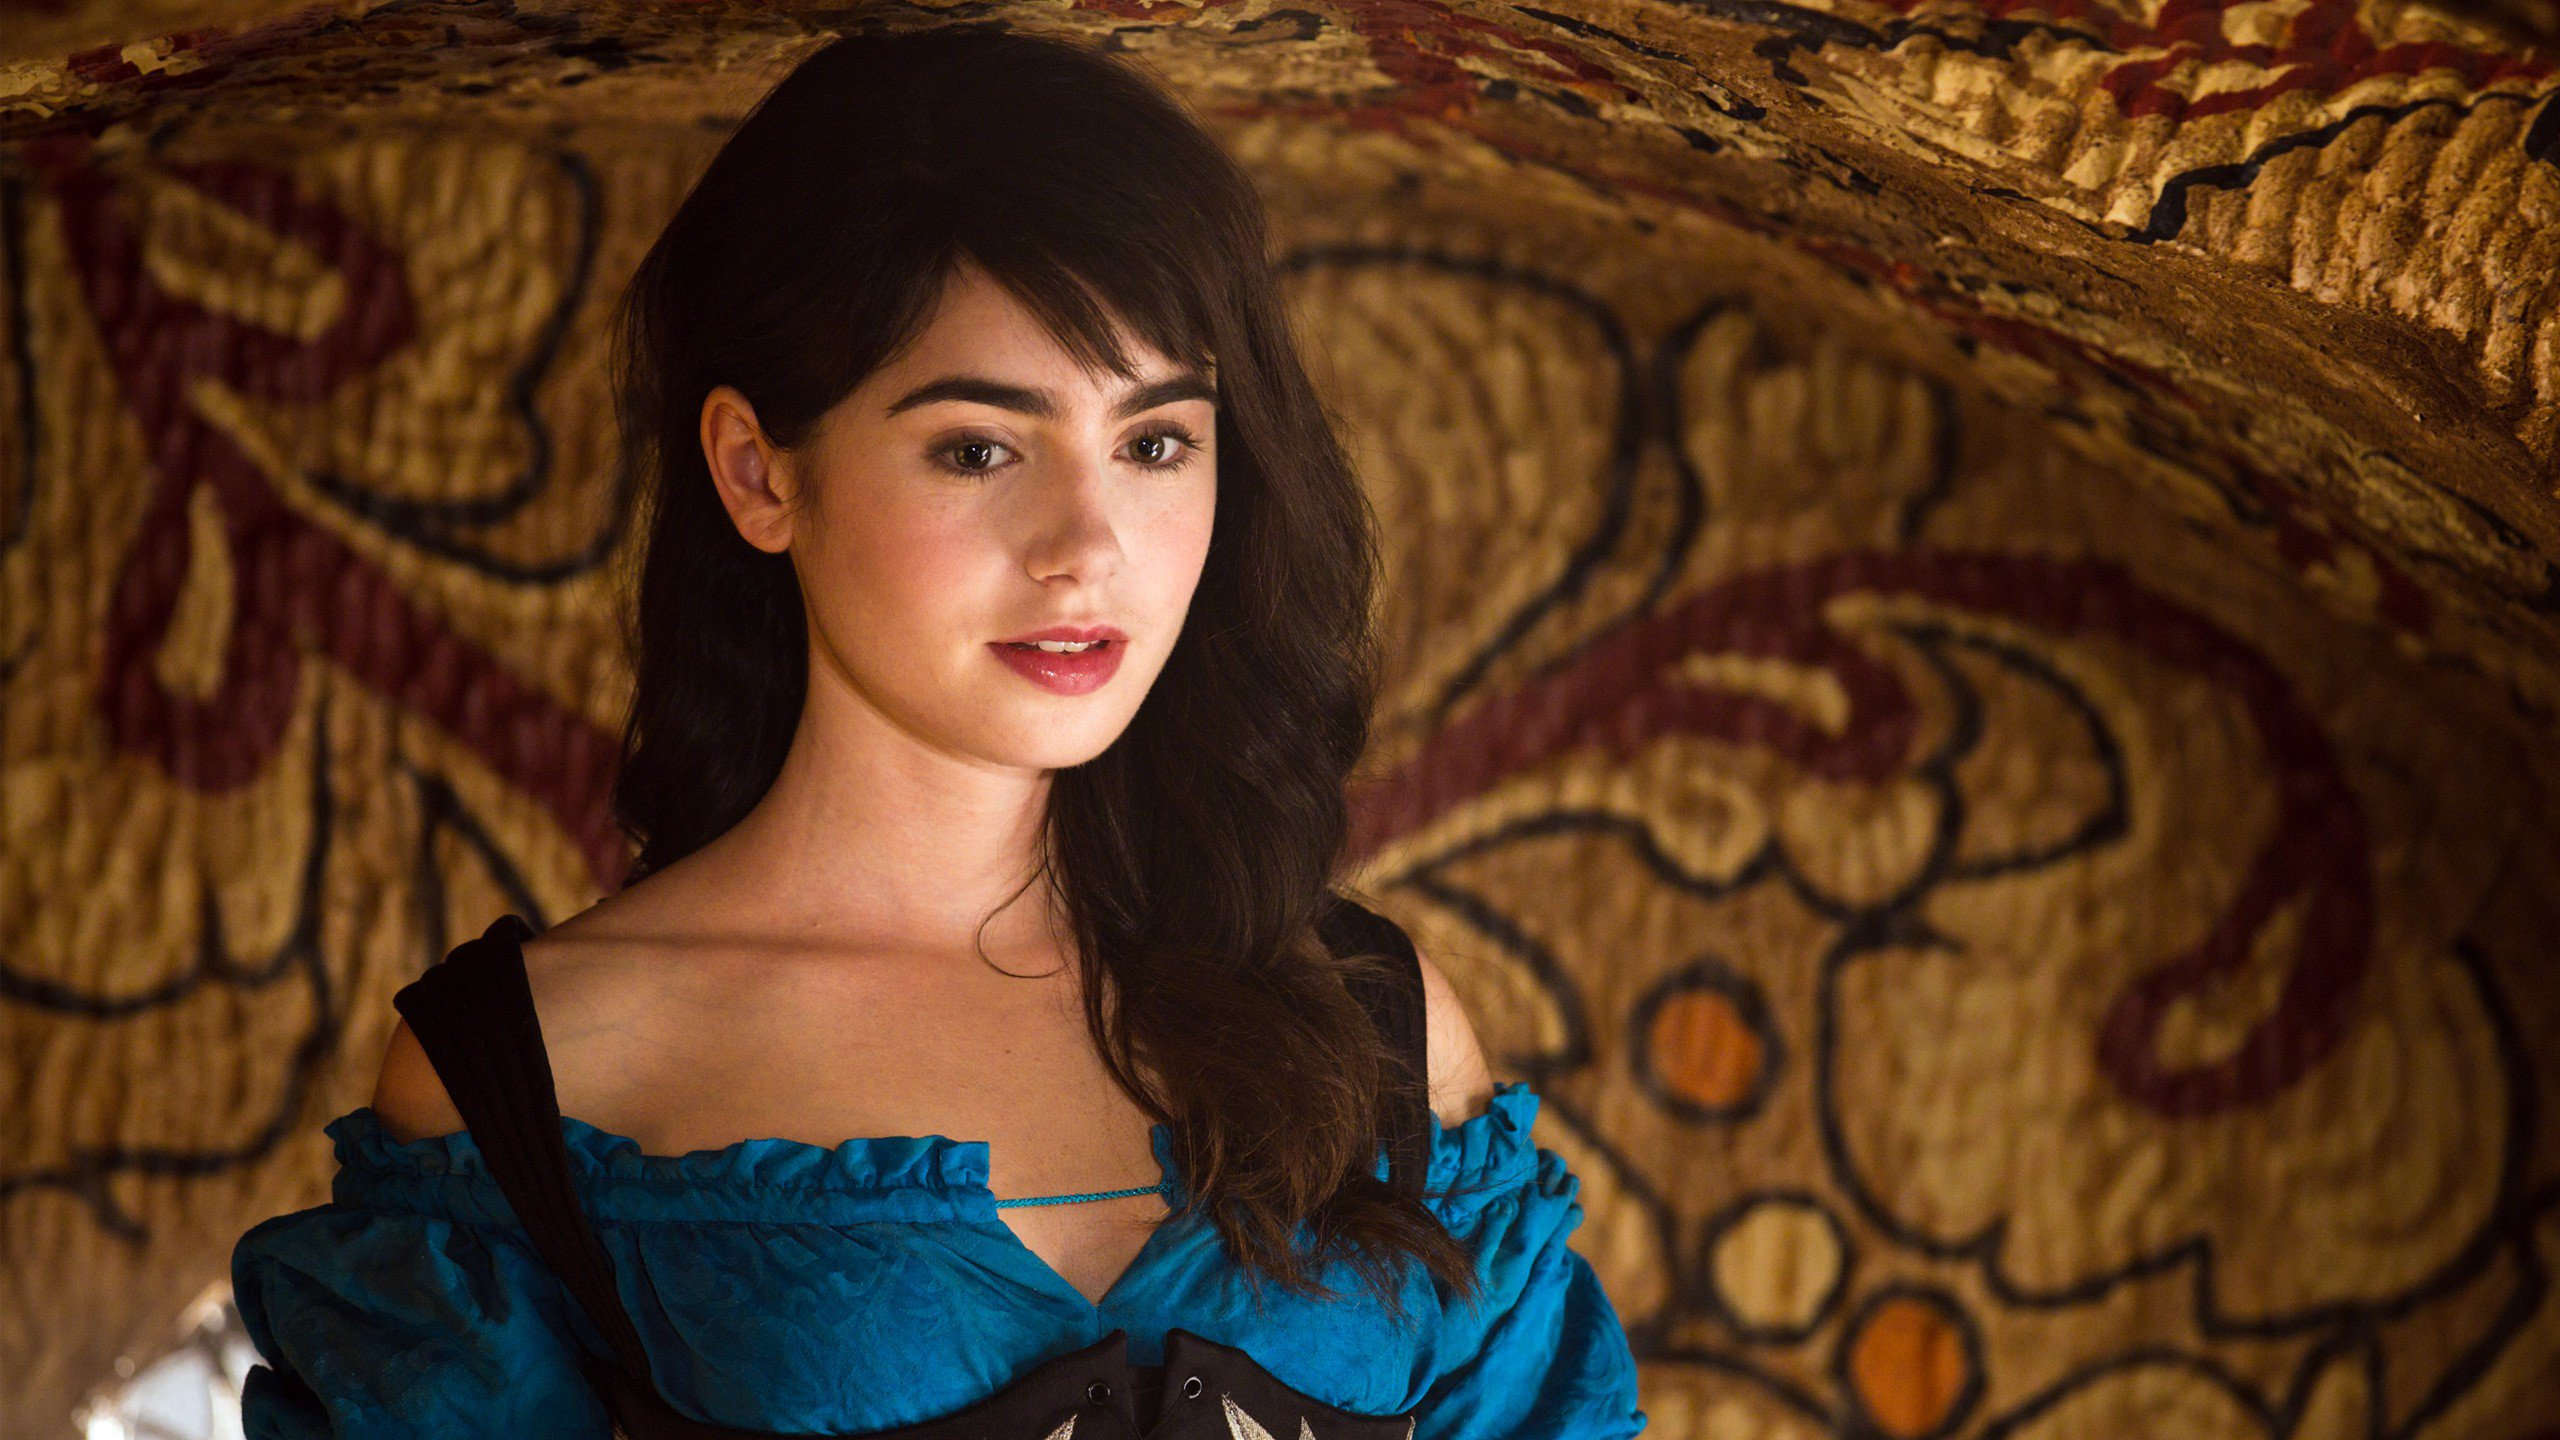 lily collins actress wallpaper 50818